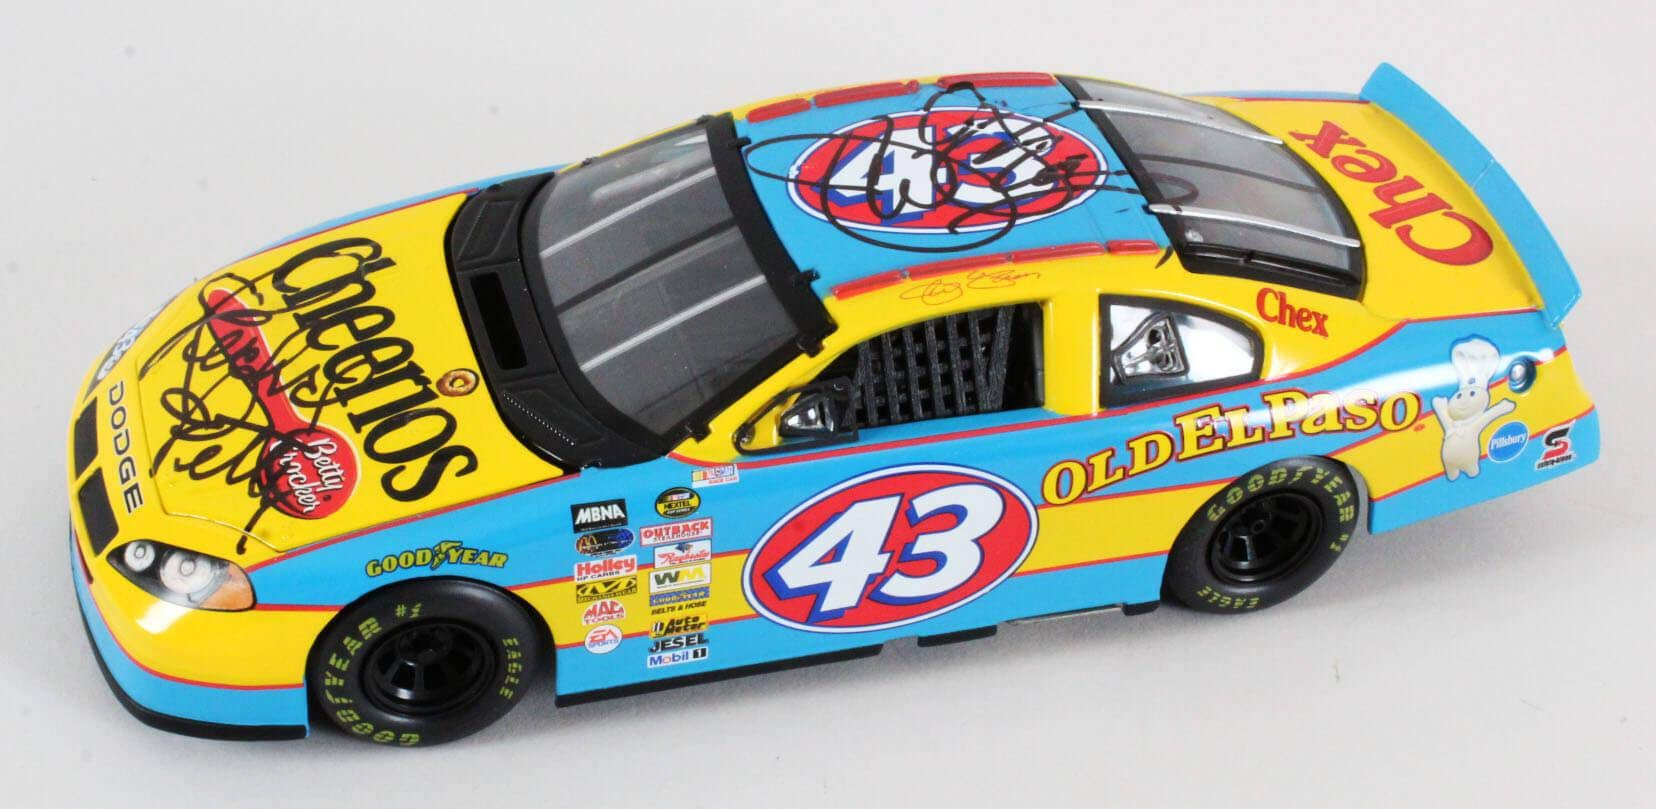 Richard Petty Signed Die Cast Car w/Jeff Green COA JSA Certified Autographed Diecast Cars